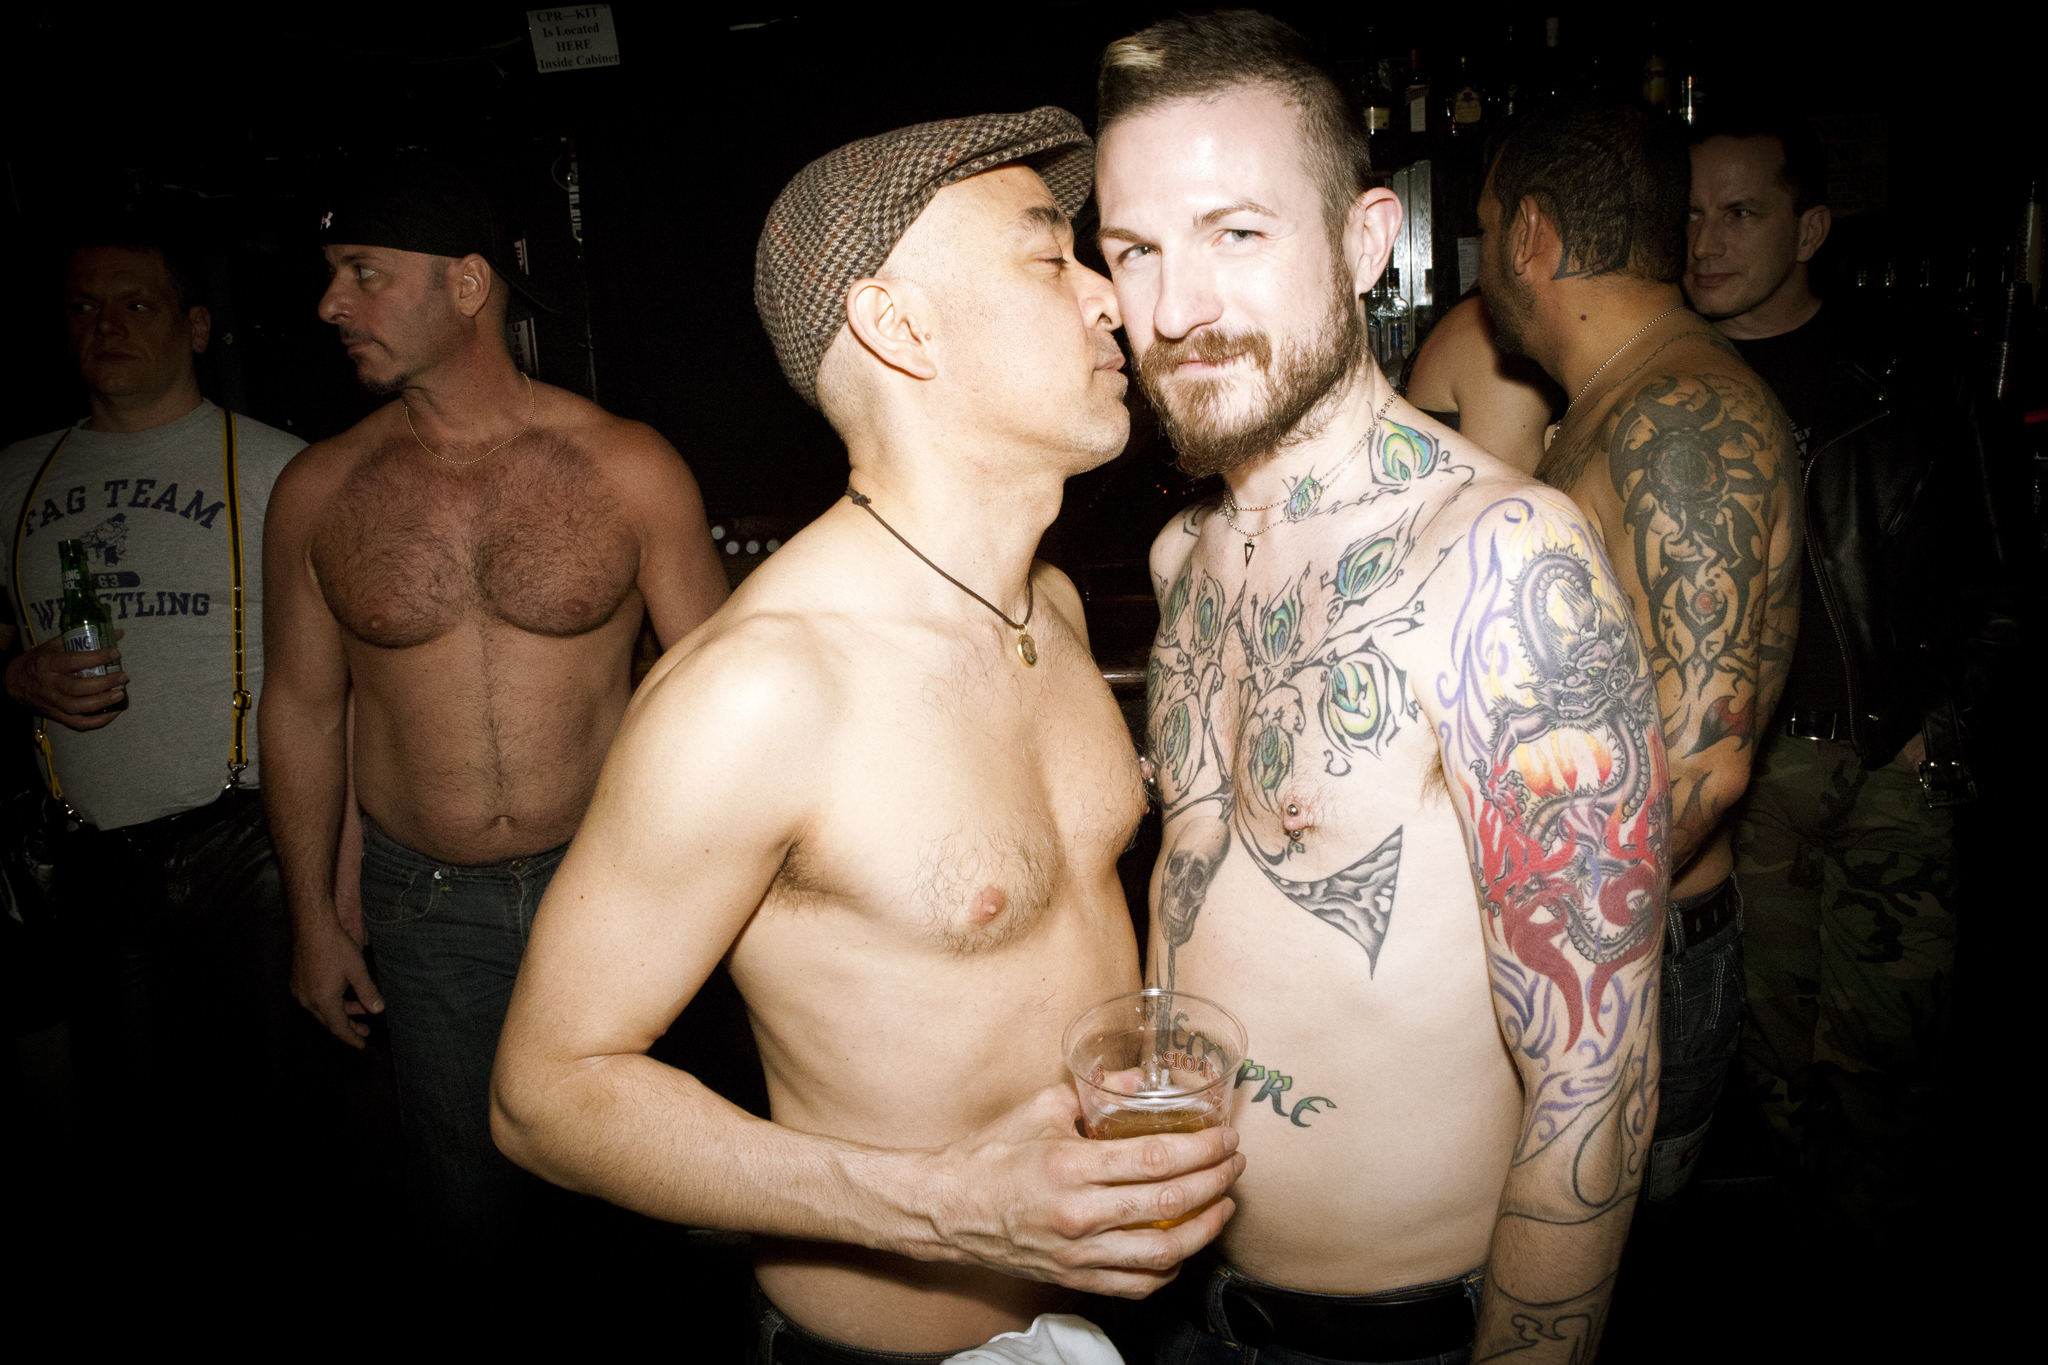 nyc bar Asian gay